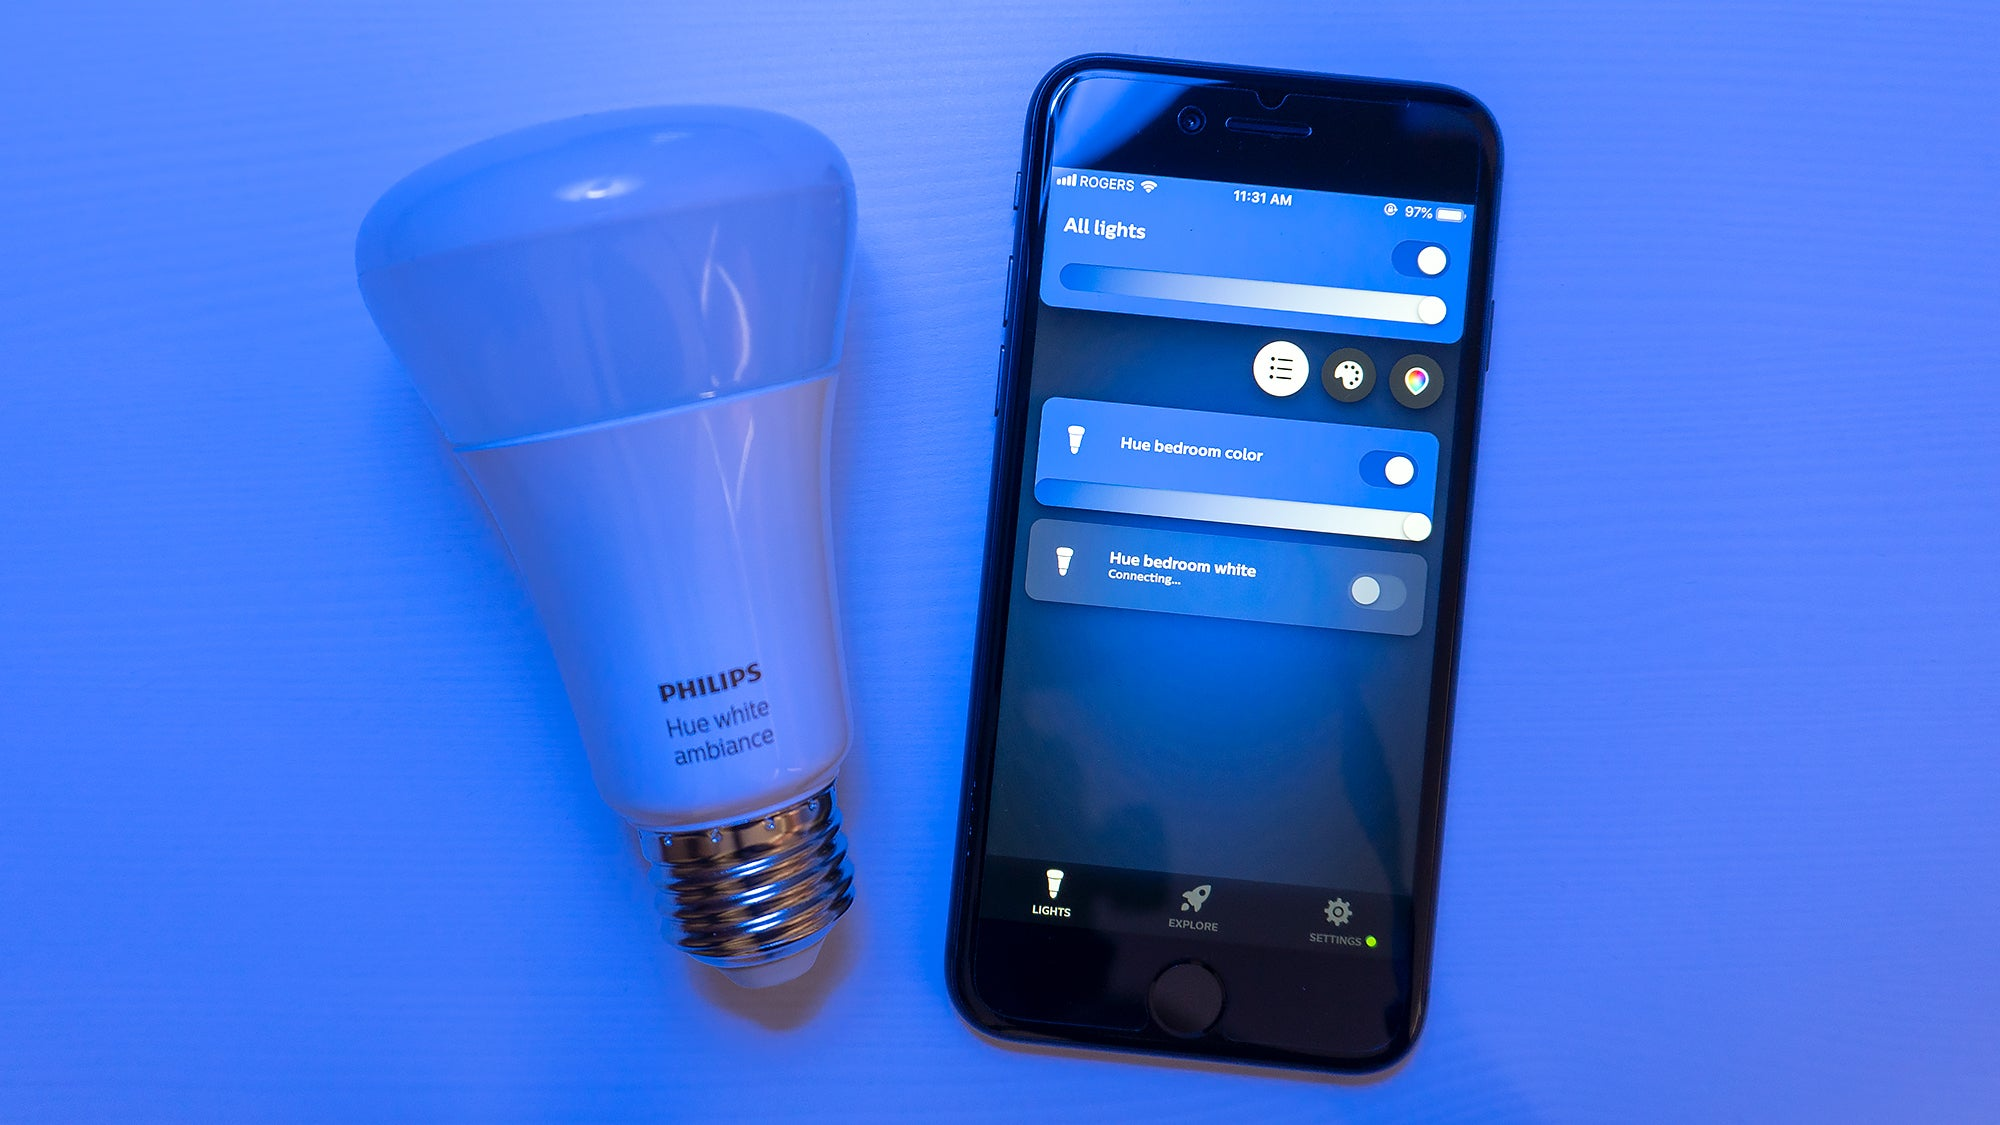 New Phillips Hue Smart Light Hack Uses Old Chain Reaction Vulnerability